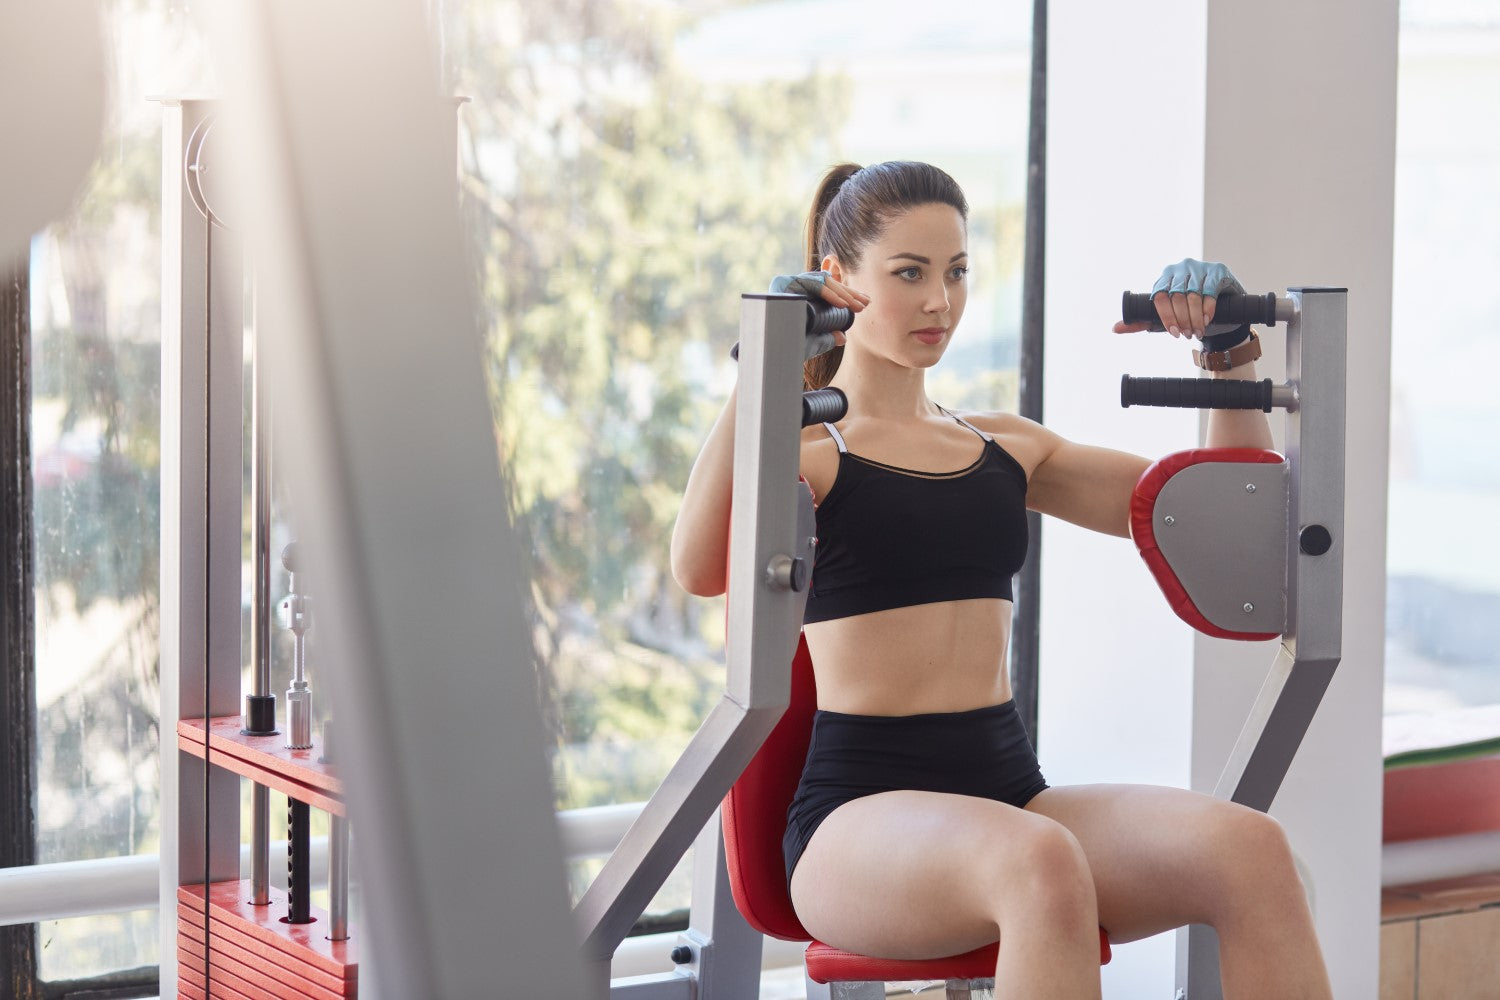 lady working out at gym